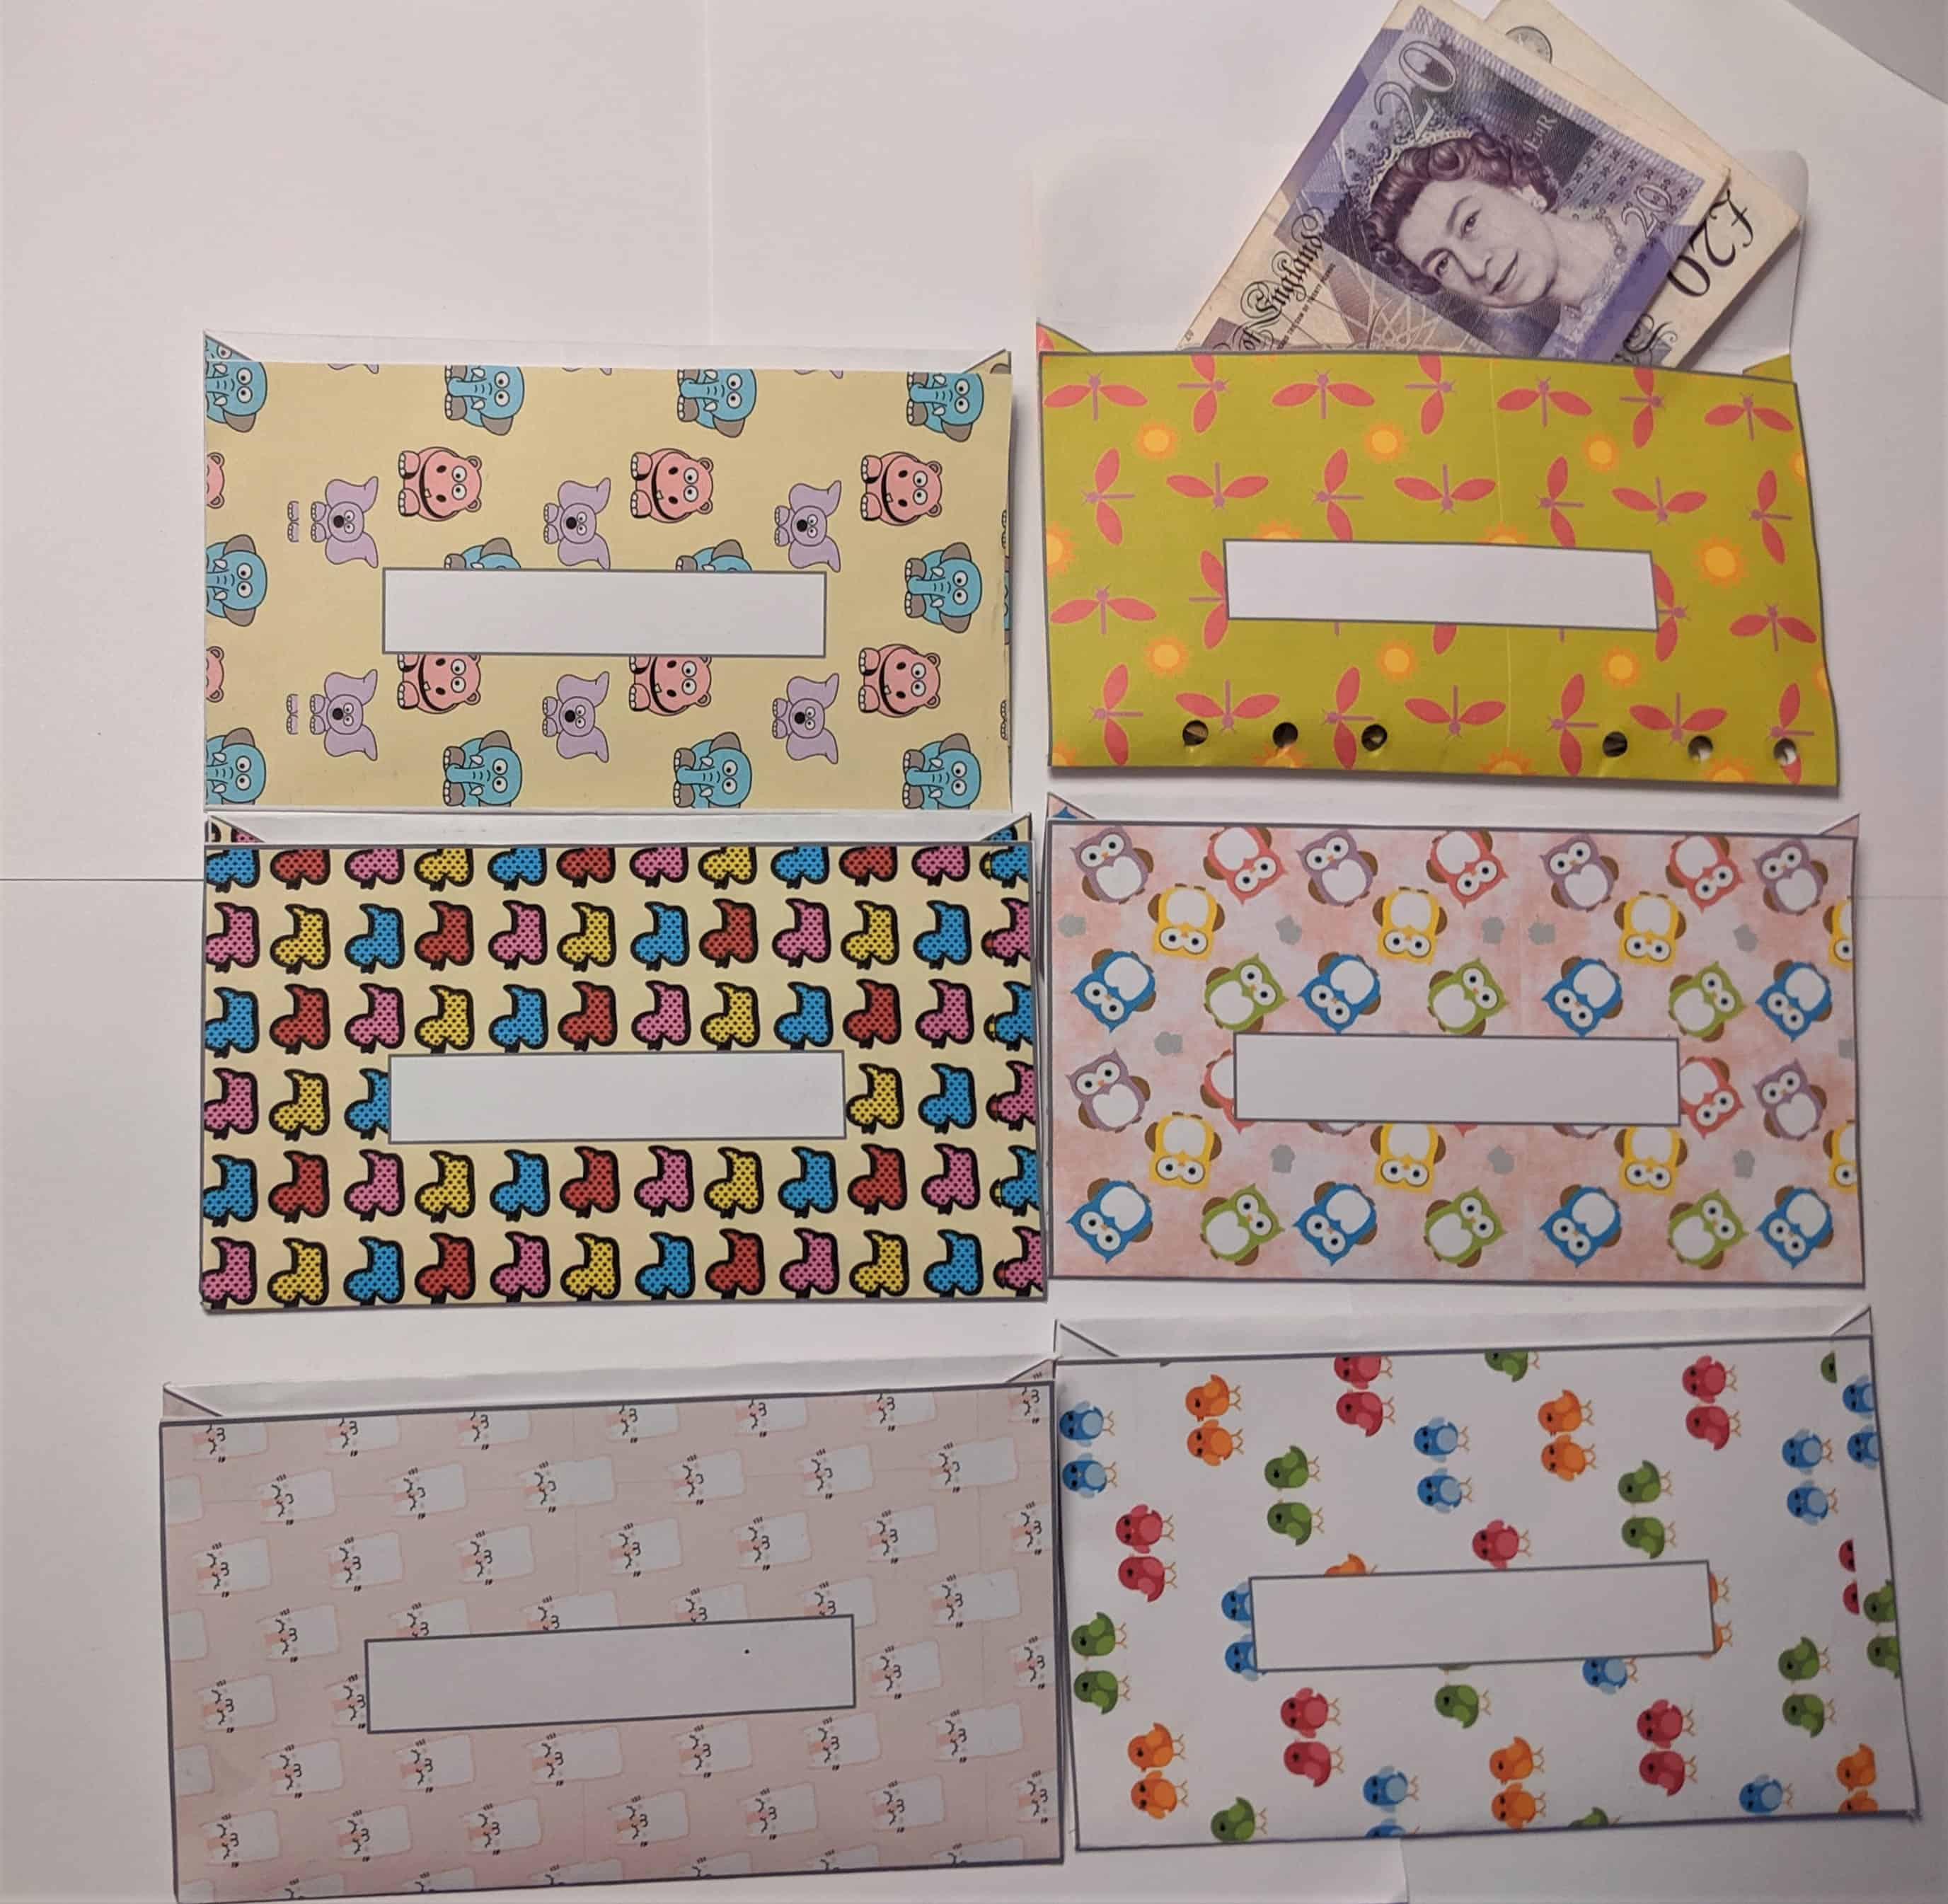 Want to start cash budgeting? Cash envelopes with a cash budget really work! I love these cute animal envelopes!